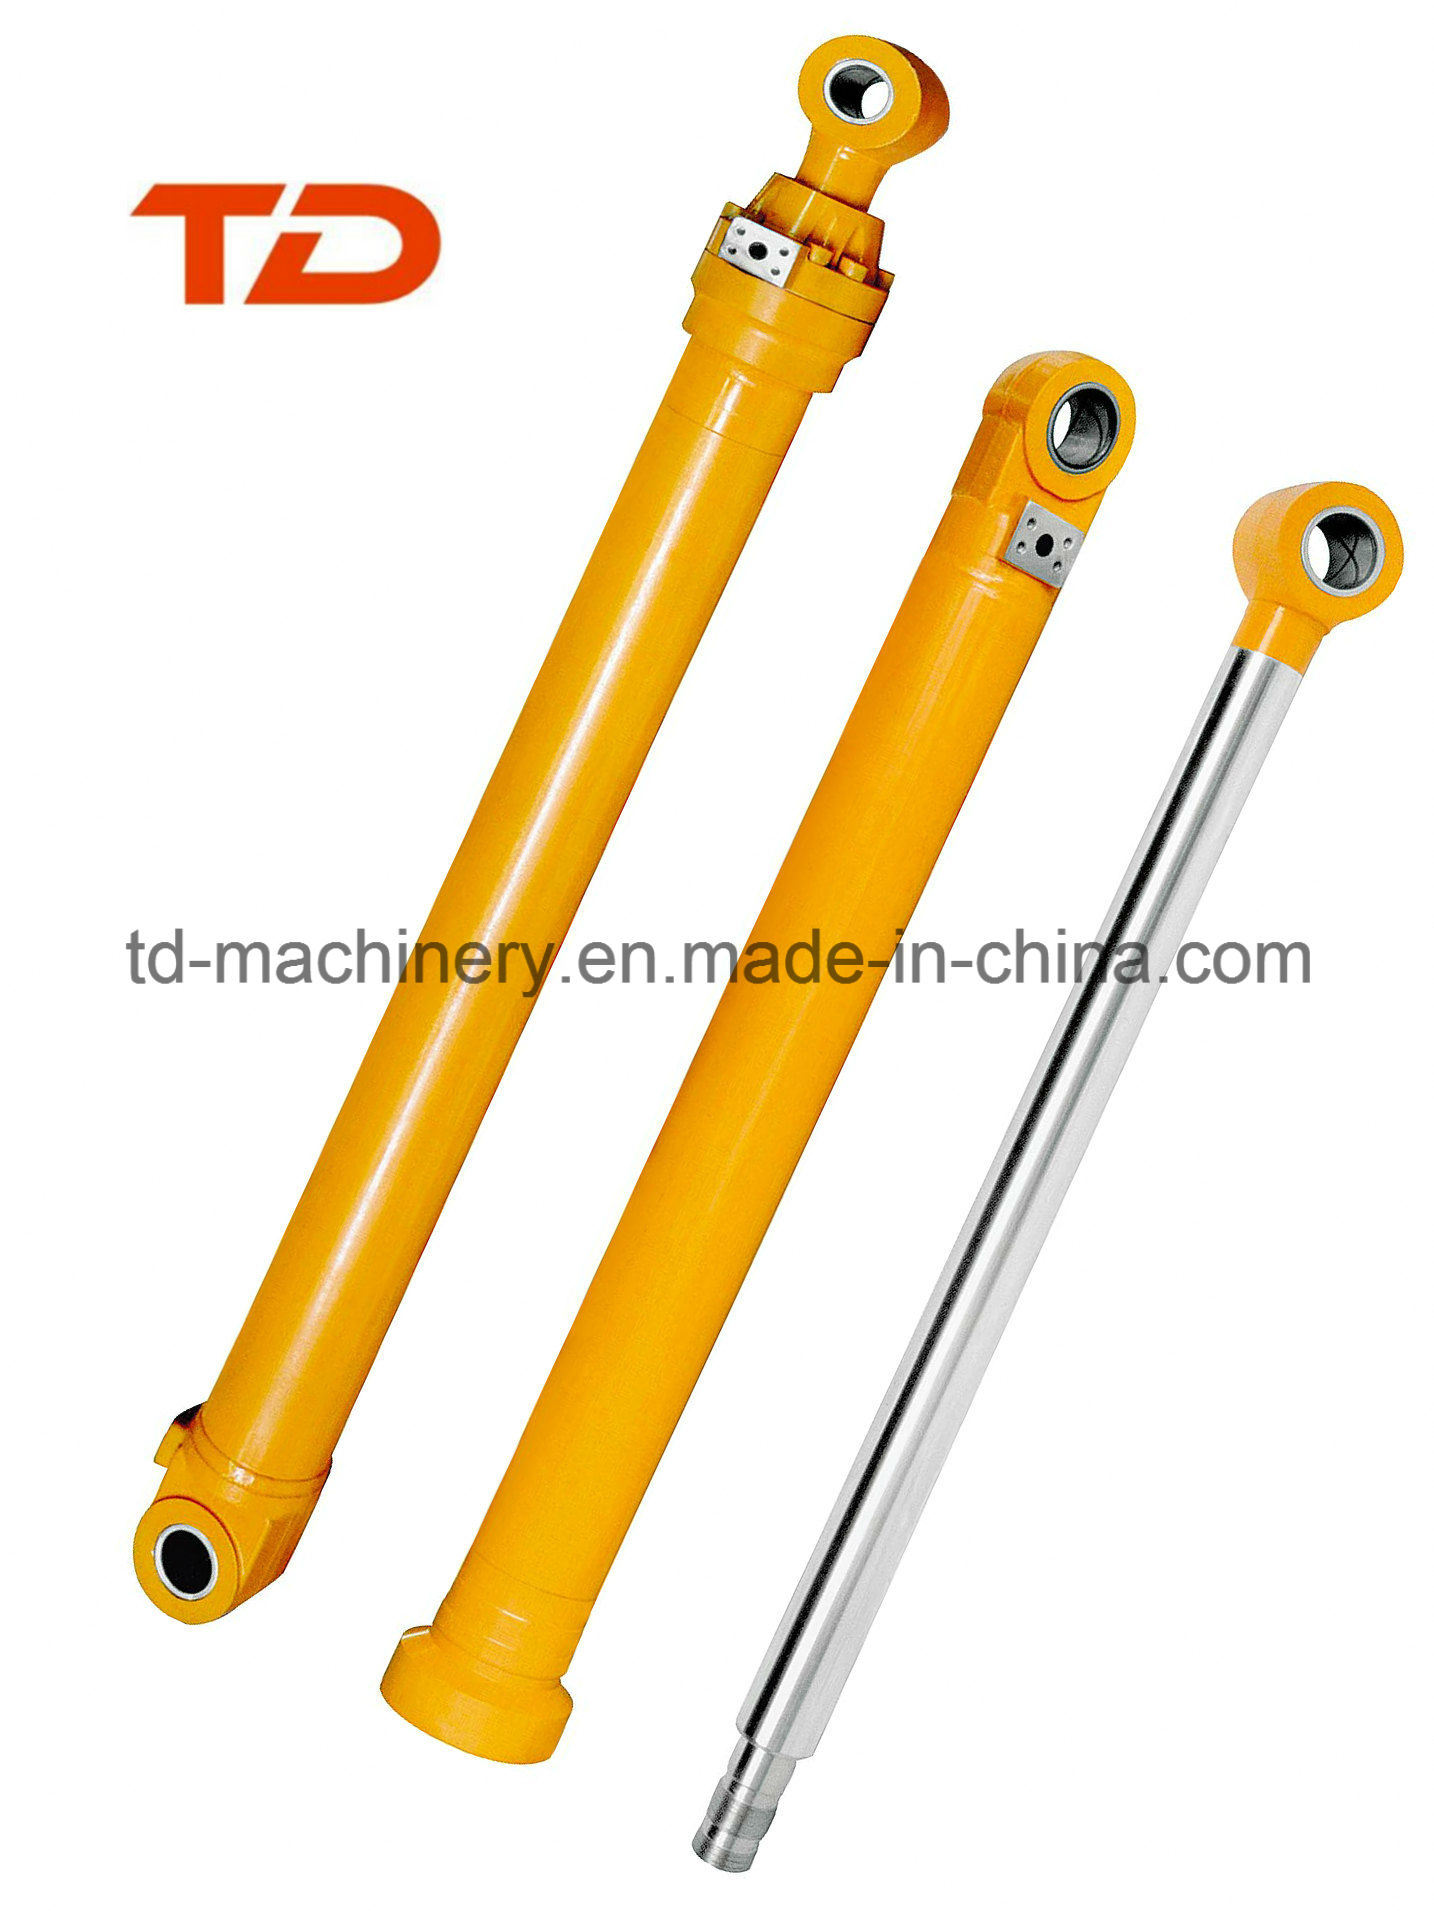 Excavator Cylinder for Construct Boom Arm and Bucket Cylinder for Excavator or Bulldozer Machinery Cylinder